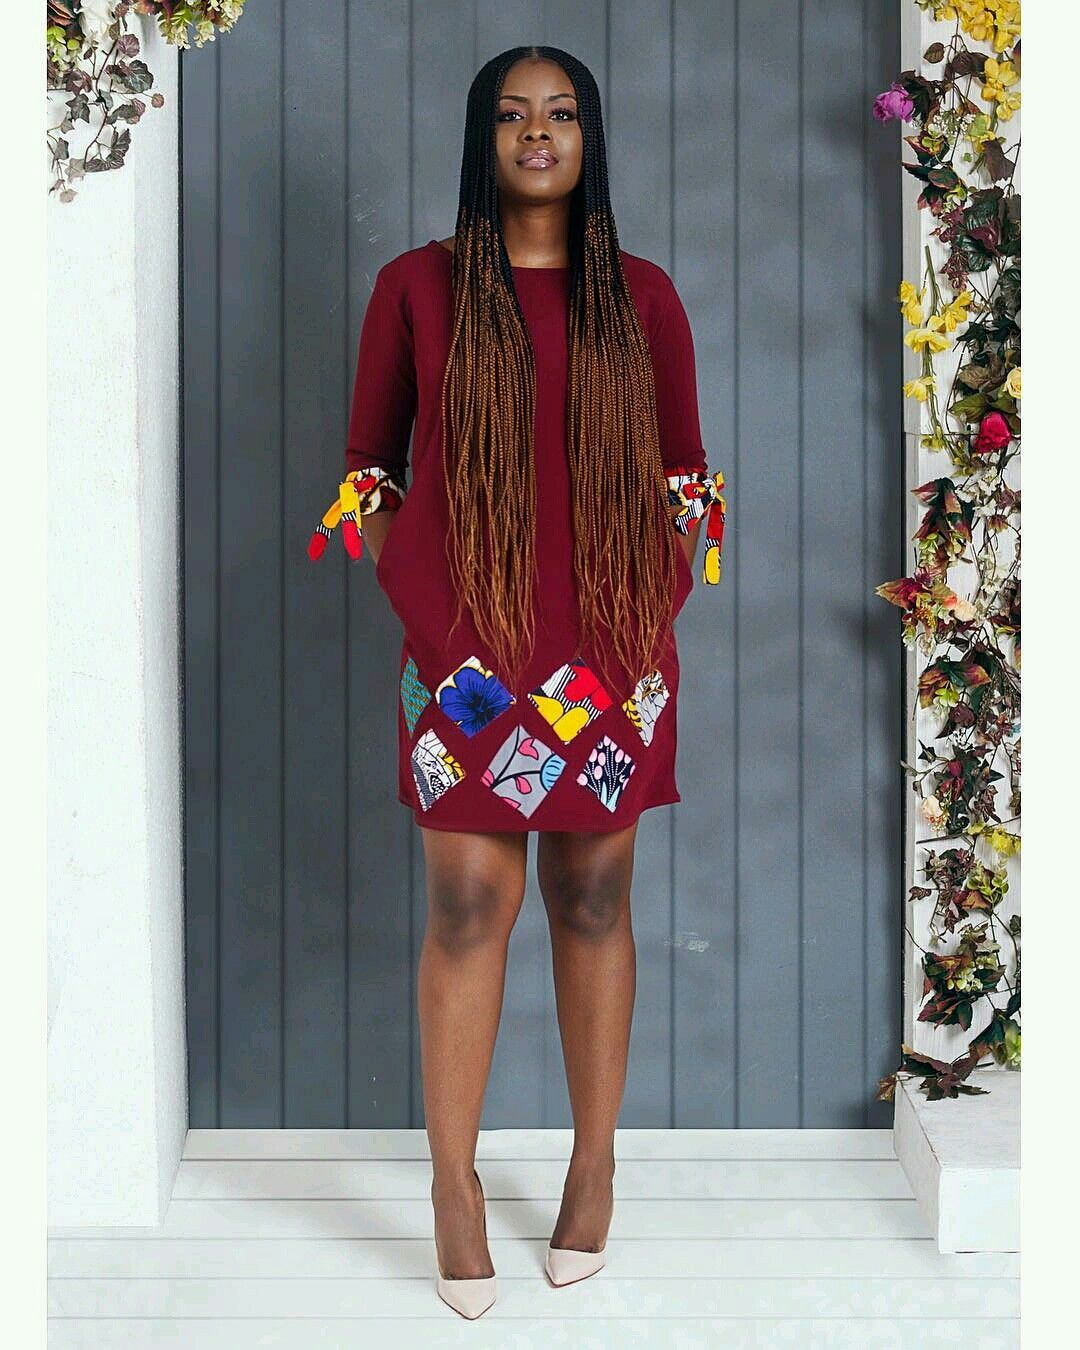 The most popular african clothing styles for women in kente